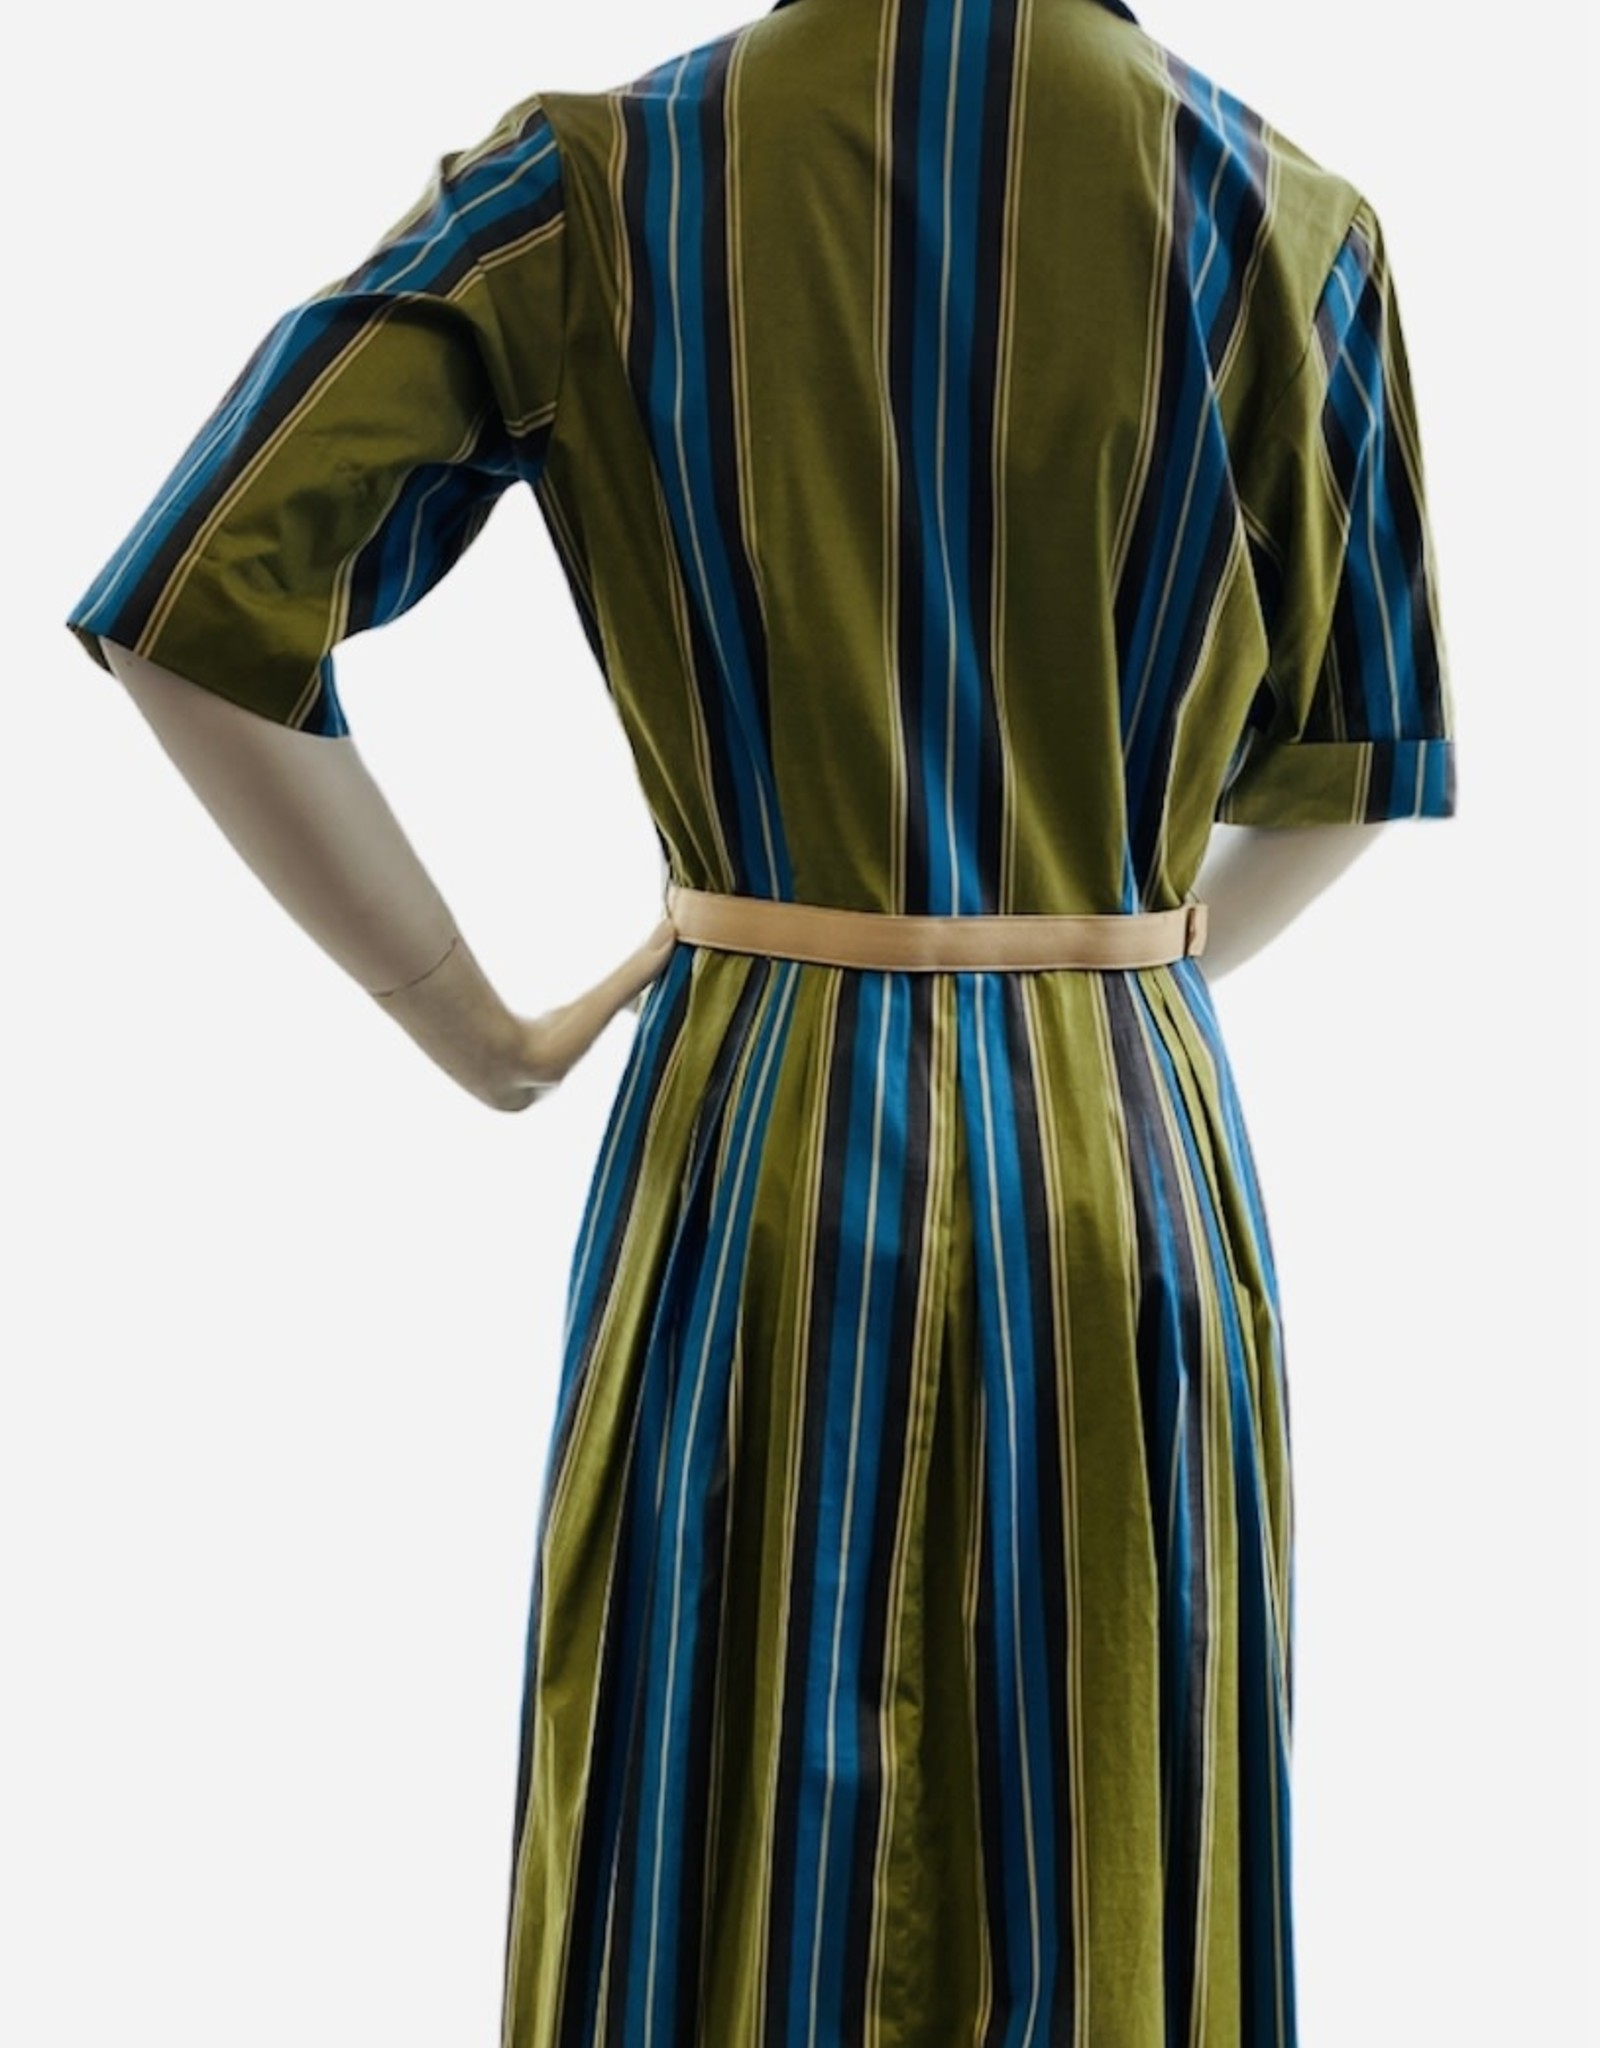 60s green and blue striped dress